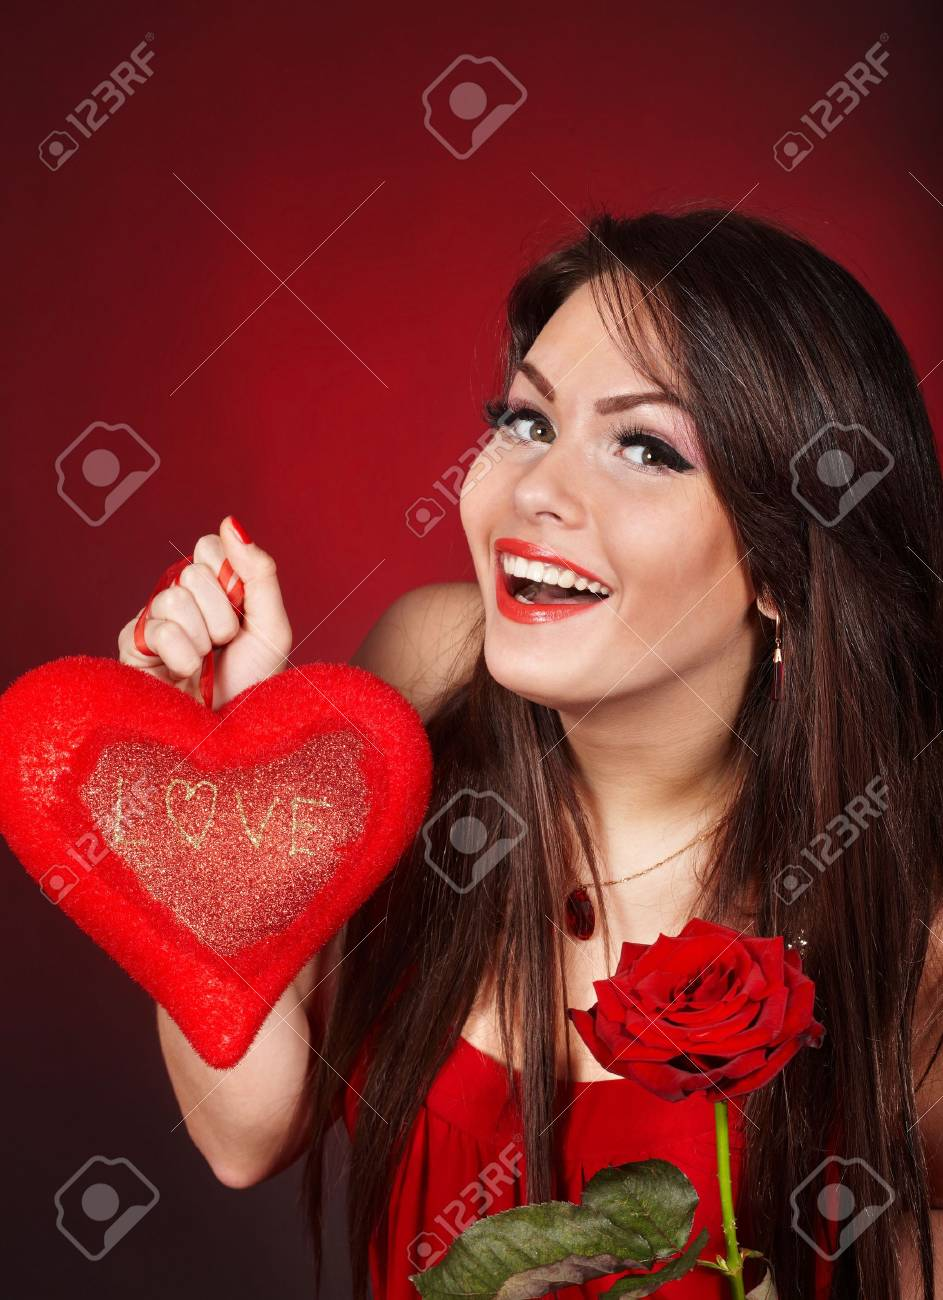 Girl with  heart and flower rose on red  background.  Valentines day. Stock Photo - 6281548